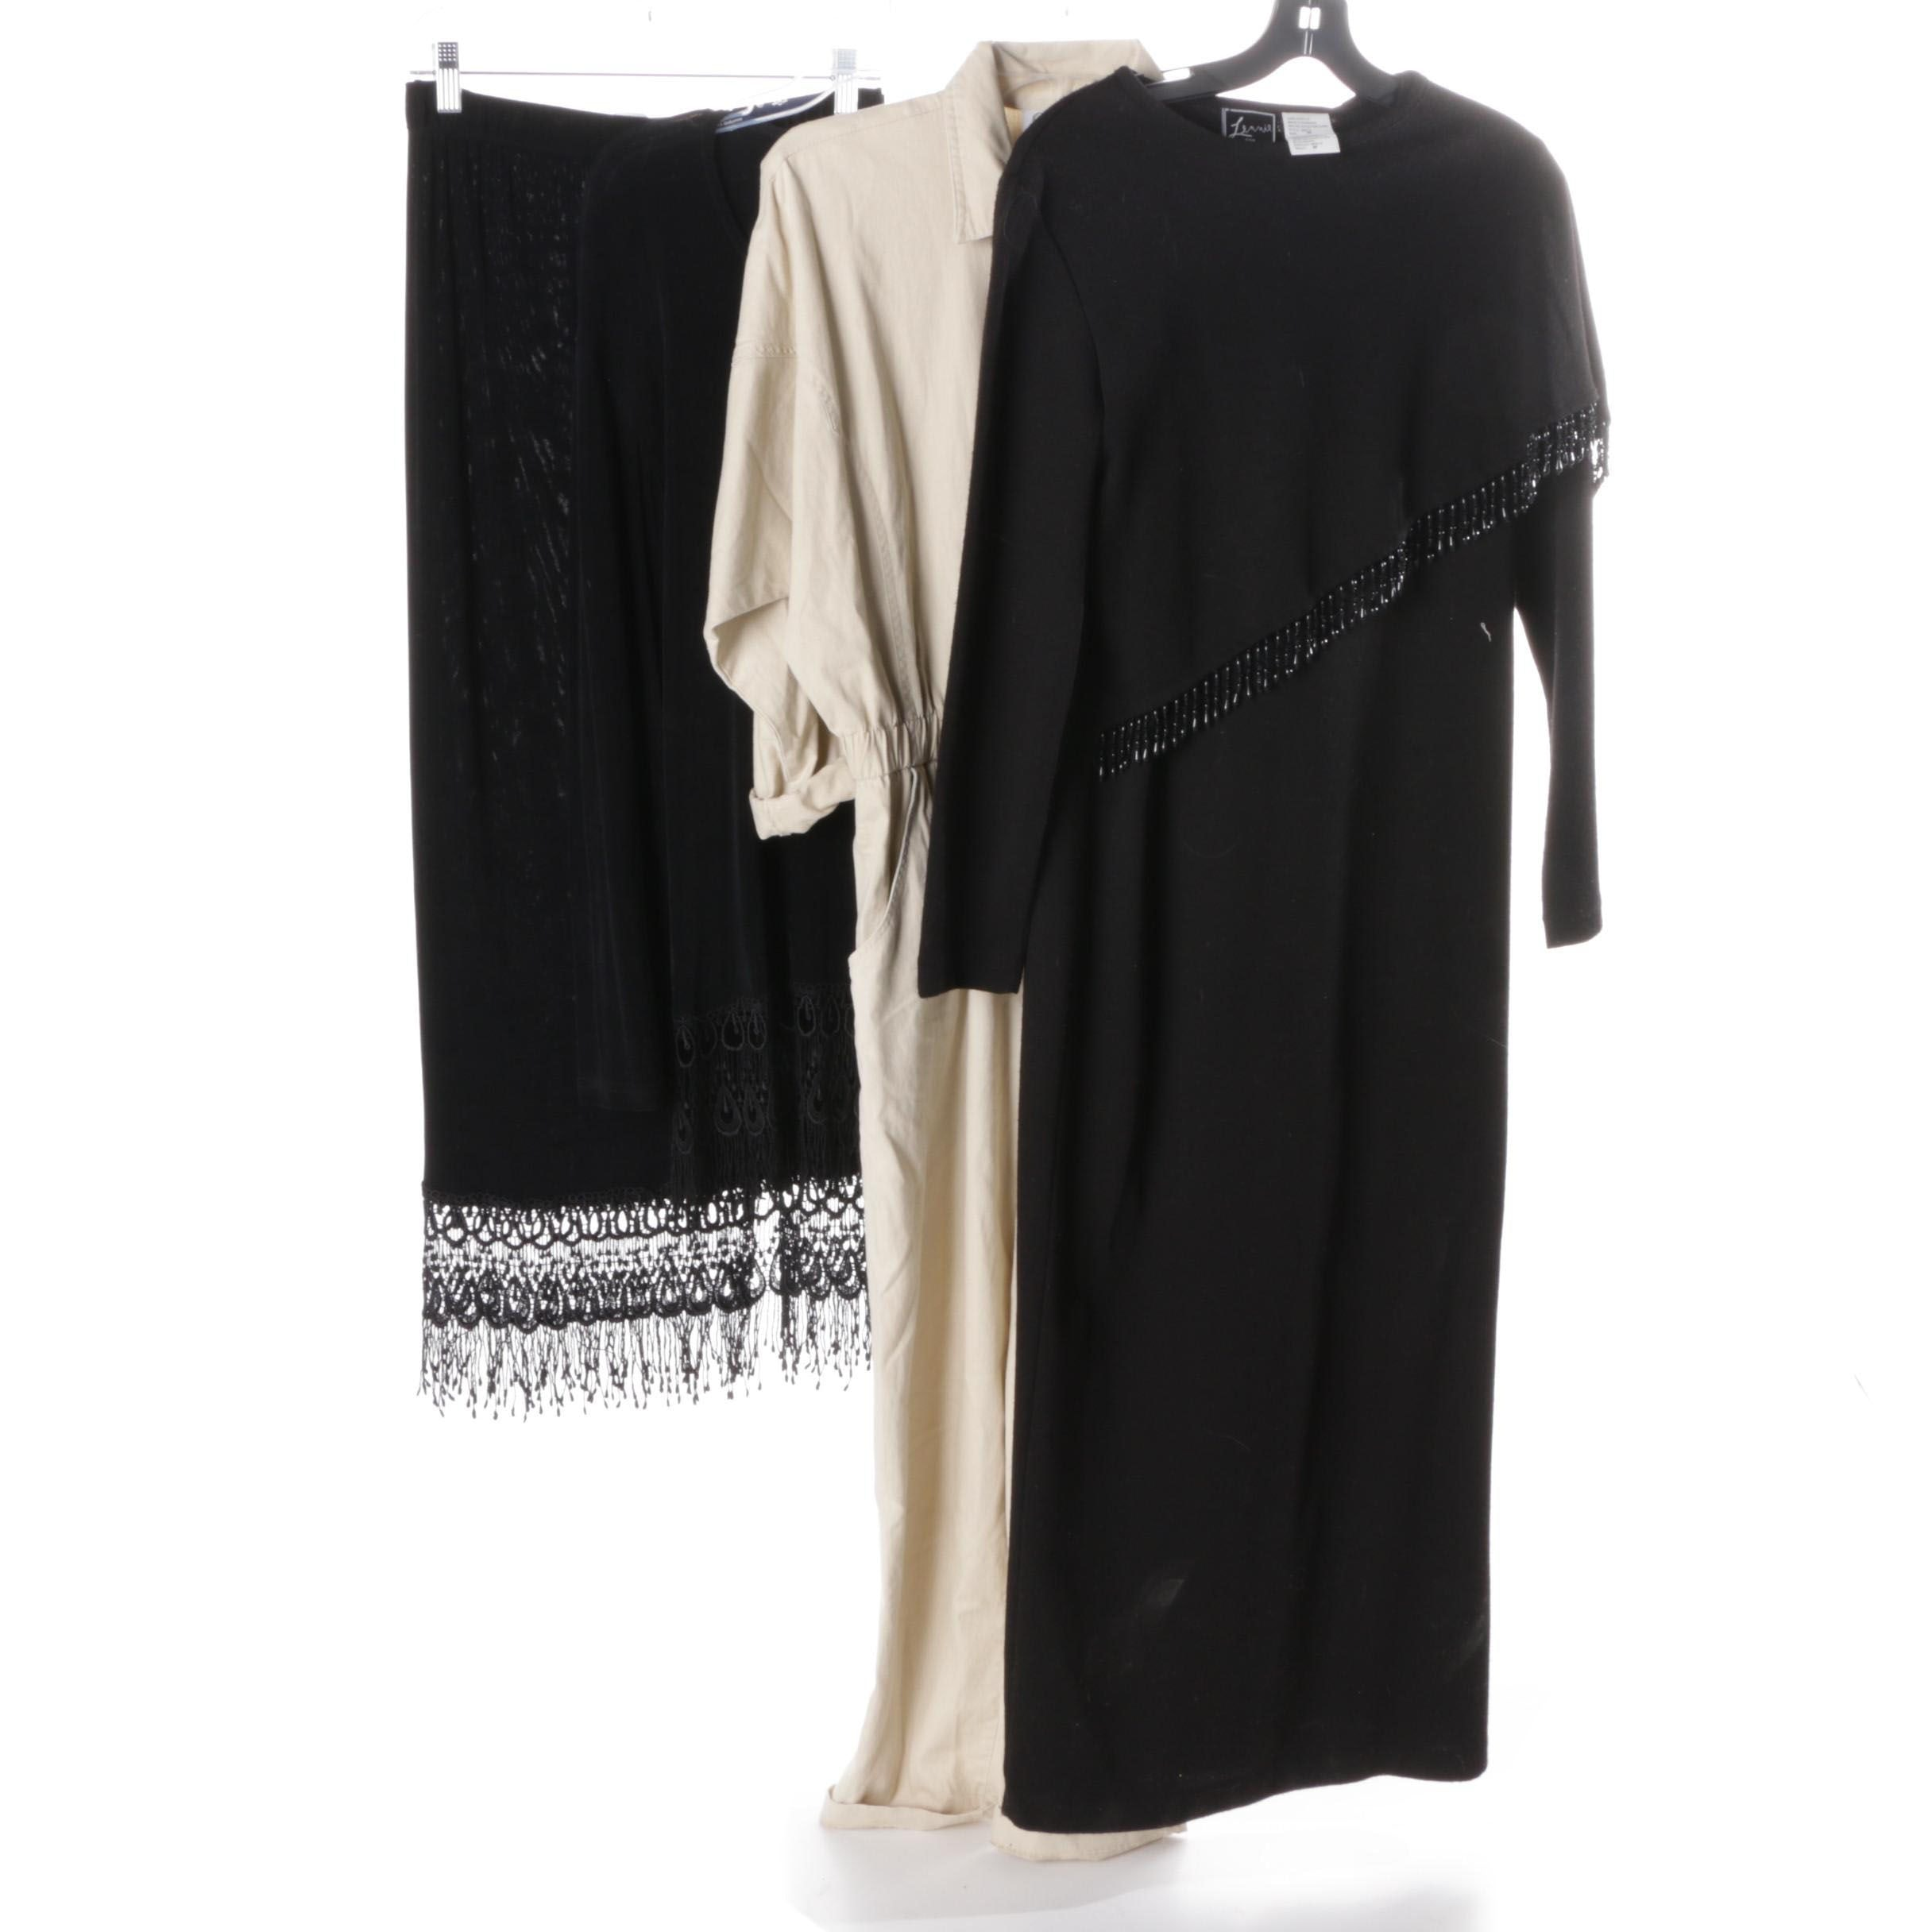 Women's Clothing Including St. Germain